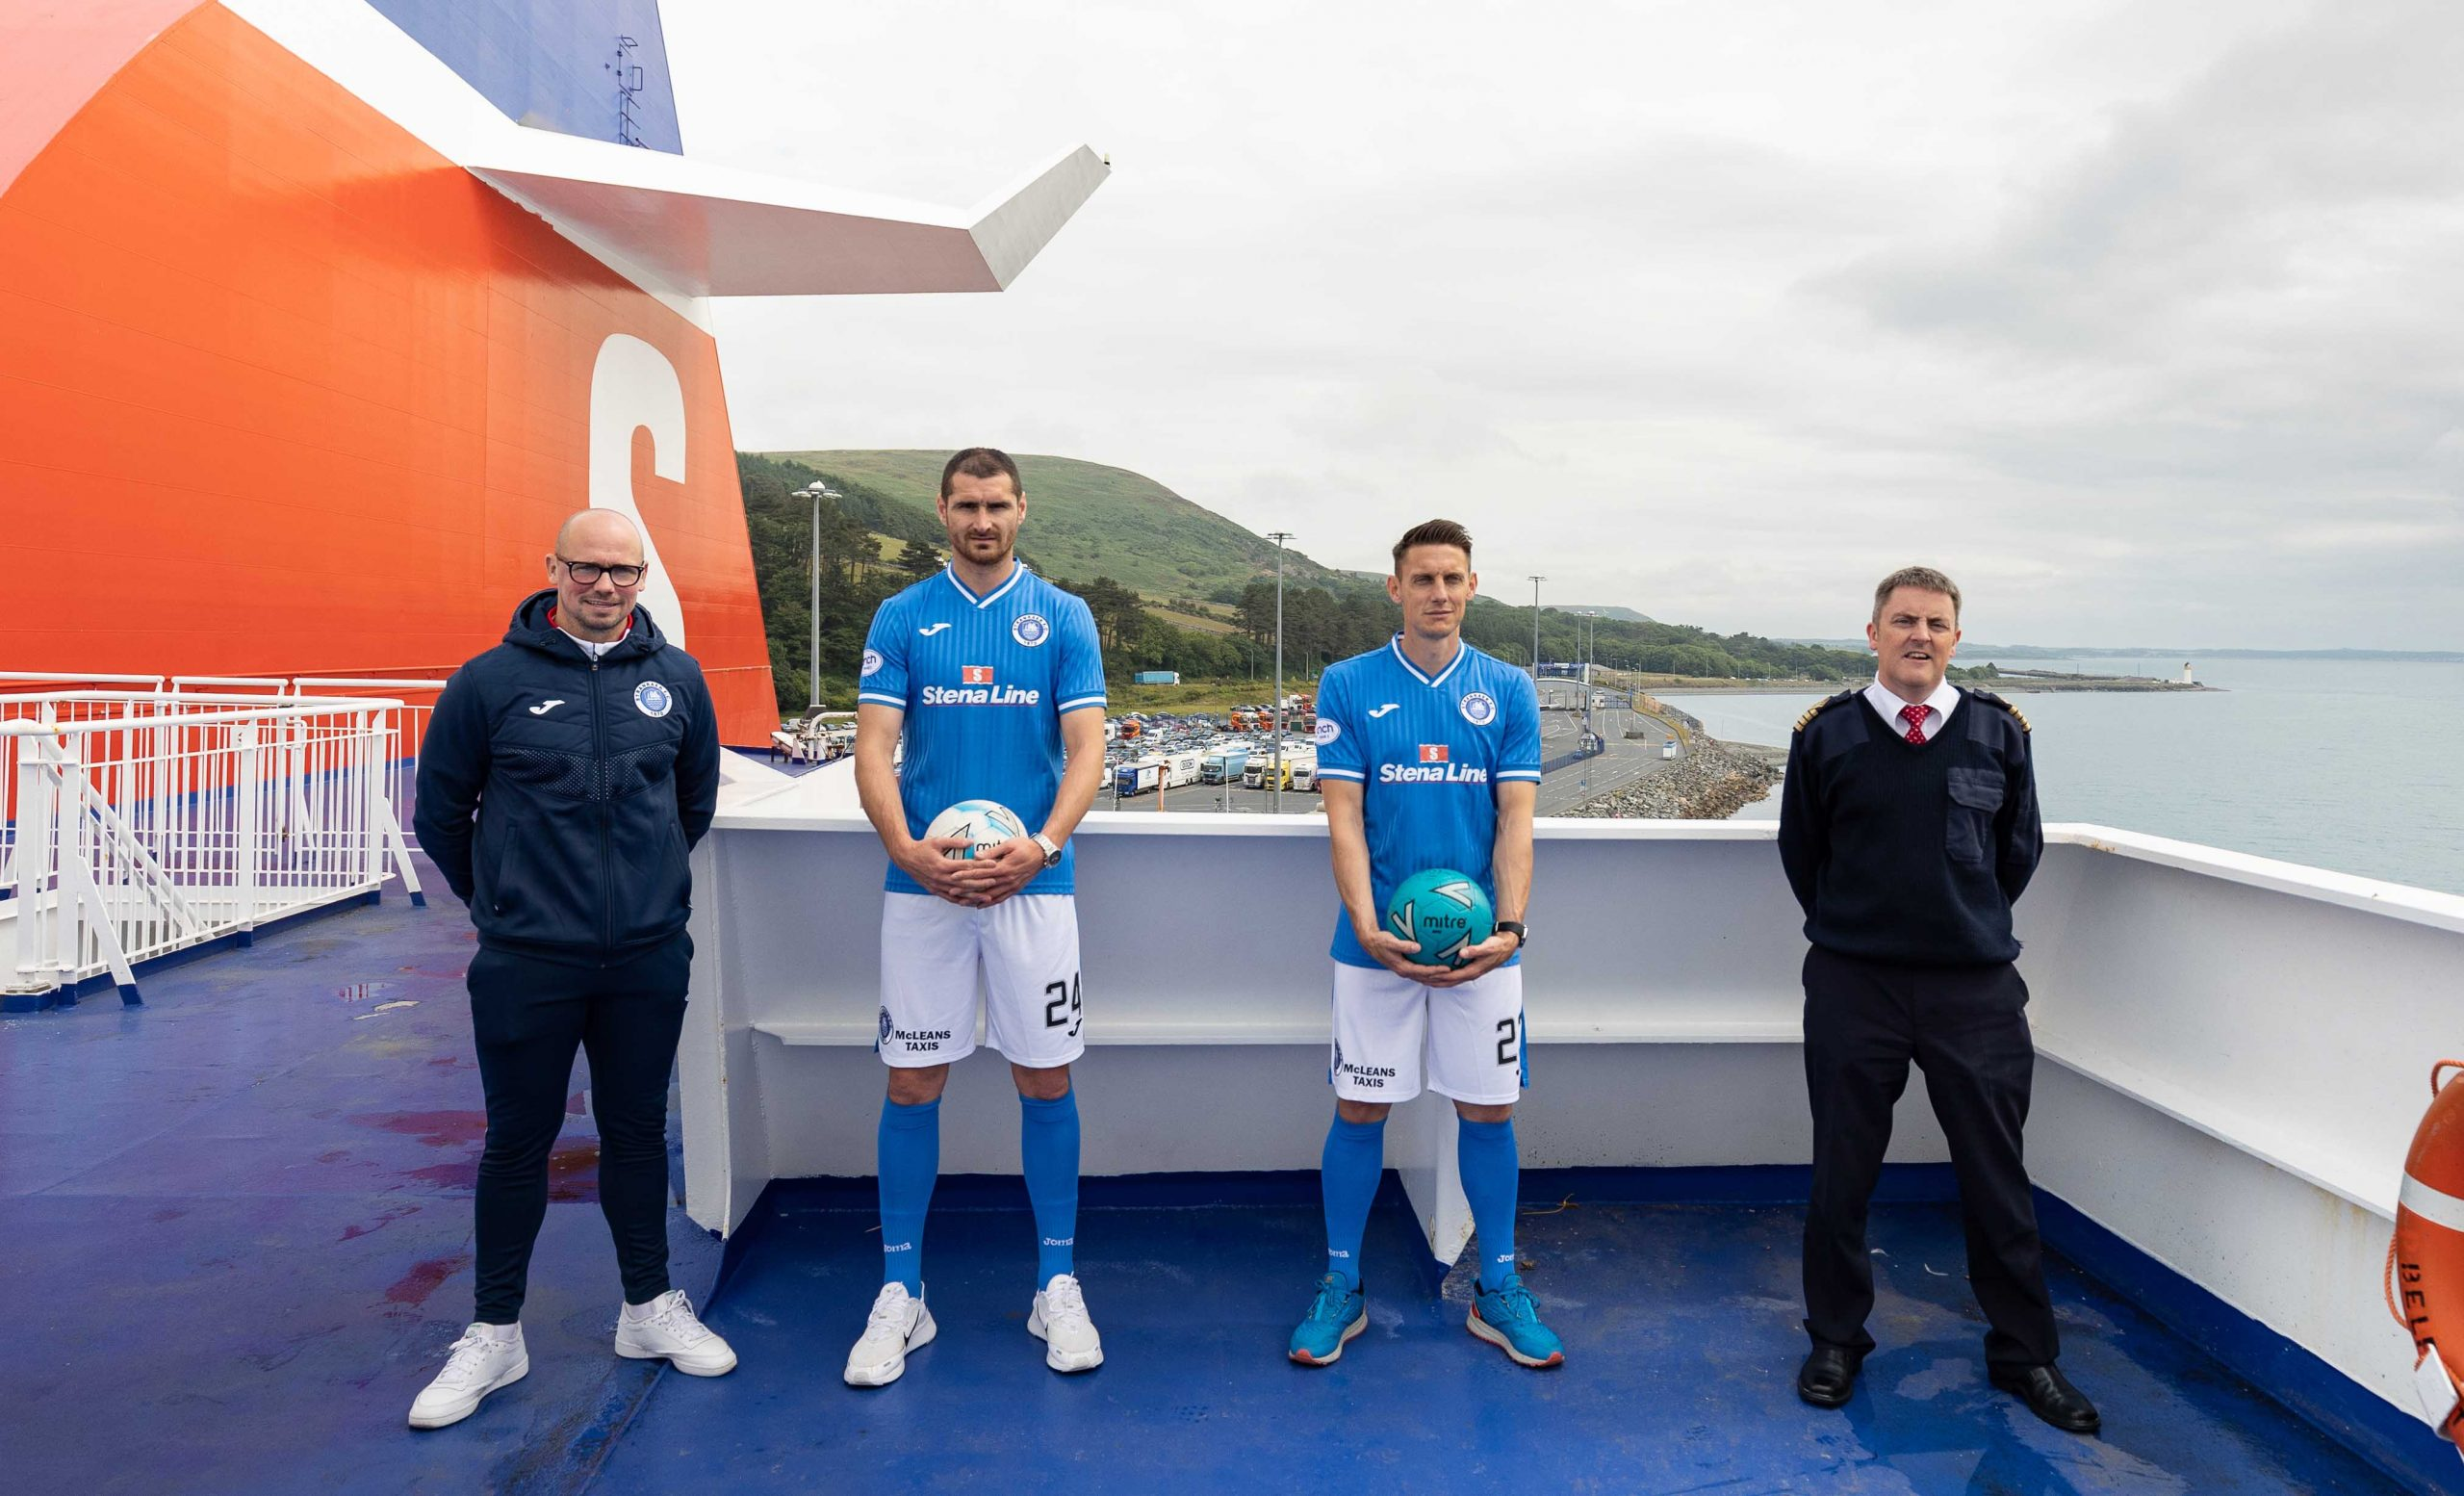 FERRY GOOD DEAL: The longest unbroken sponsorship deal in British professional football history is to continue for a staggering 34th consecutive season after ferry company Stena Line renewed its partnership with Scottish League Two side Stranraer Football Club. Stena Line's long-running association with Stranraer FC 'kicked off' in 1988 and has lasted longer than any other sponsorship out of all the English, Scottish and Welsh professional football leagues. Celebrating the renewal of the sponsorship on top of the Superfast VII ferry are (l-r) Stranraer FC team manager Jamie Hamill, first team players Darryl Duffy and Scott Robertson, and the ship's Captain Casey Doyle.